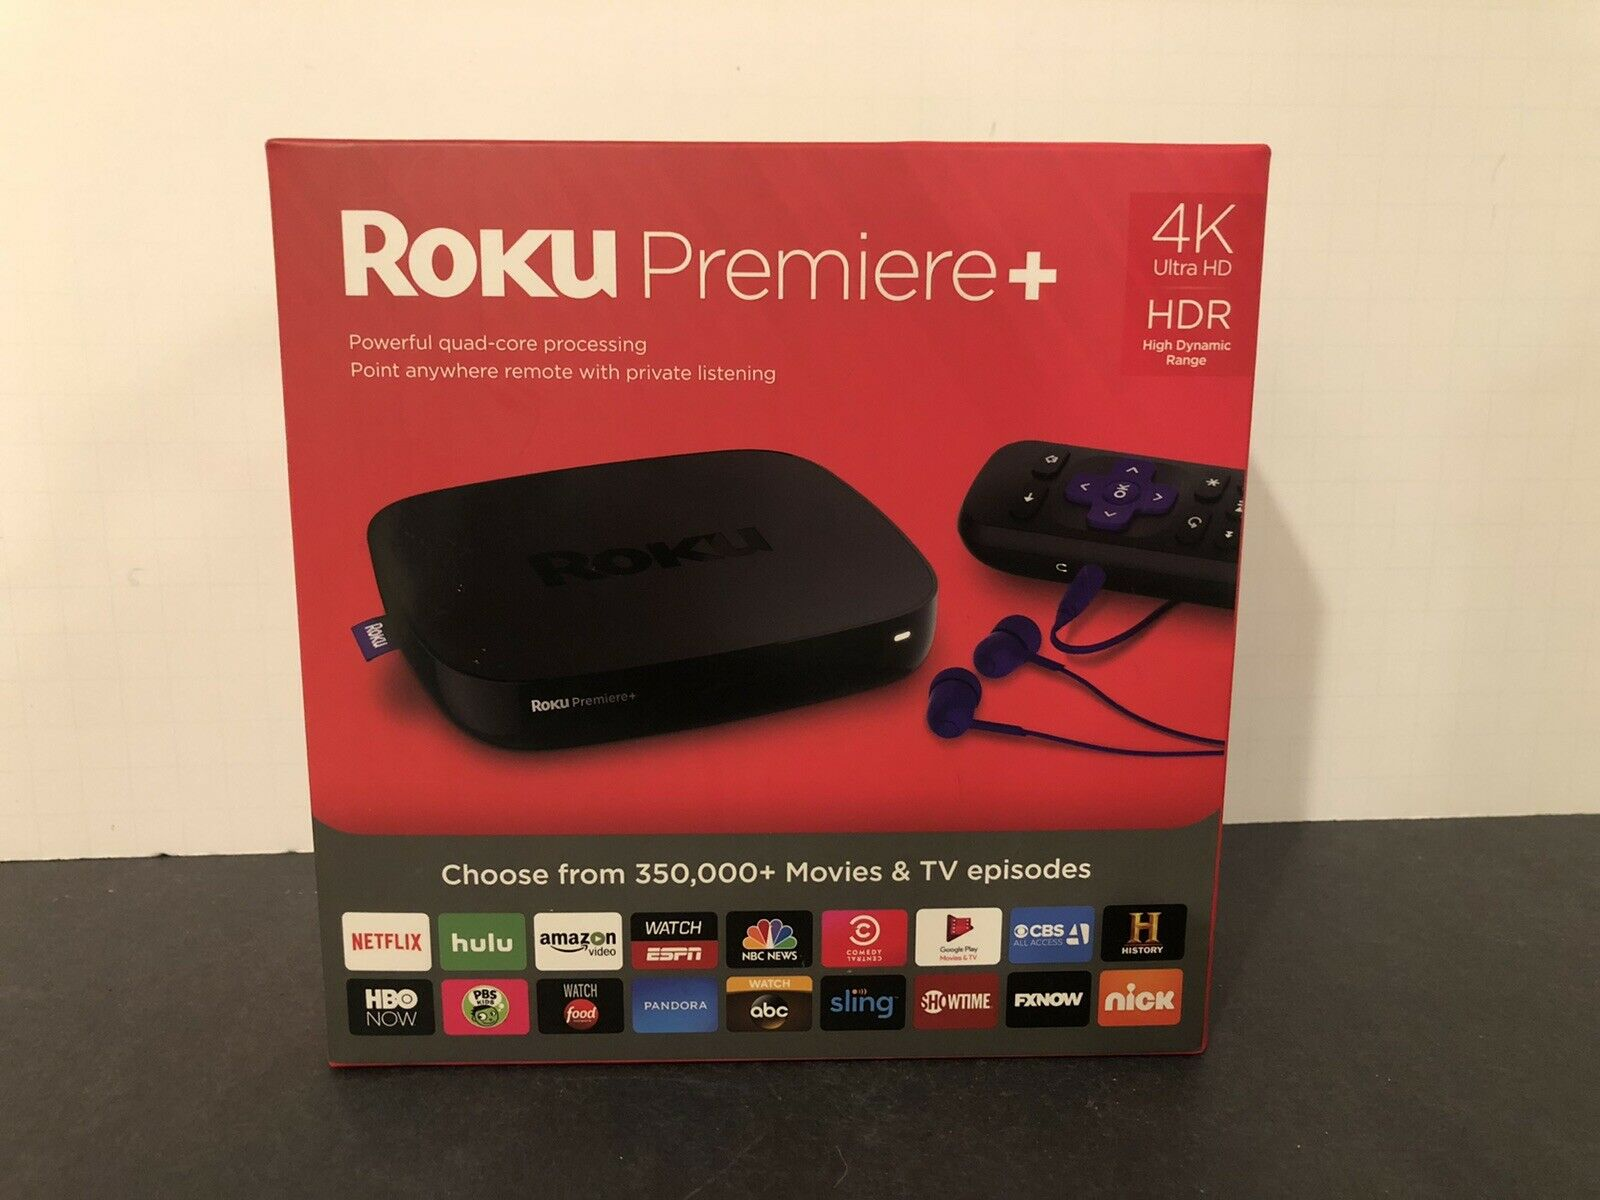 Roku Premiere+ (Plus) + 4630R 4K HDR Quad-Core Streaming Media Player NEW 4630r hdr media new player roku streaming